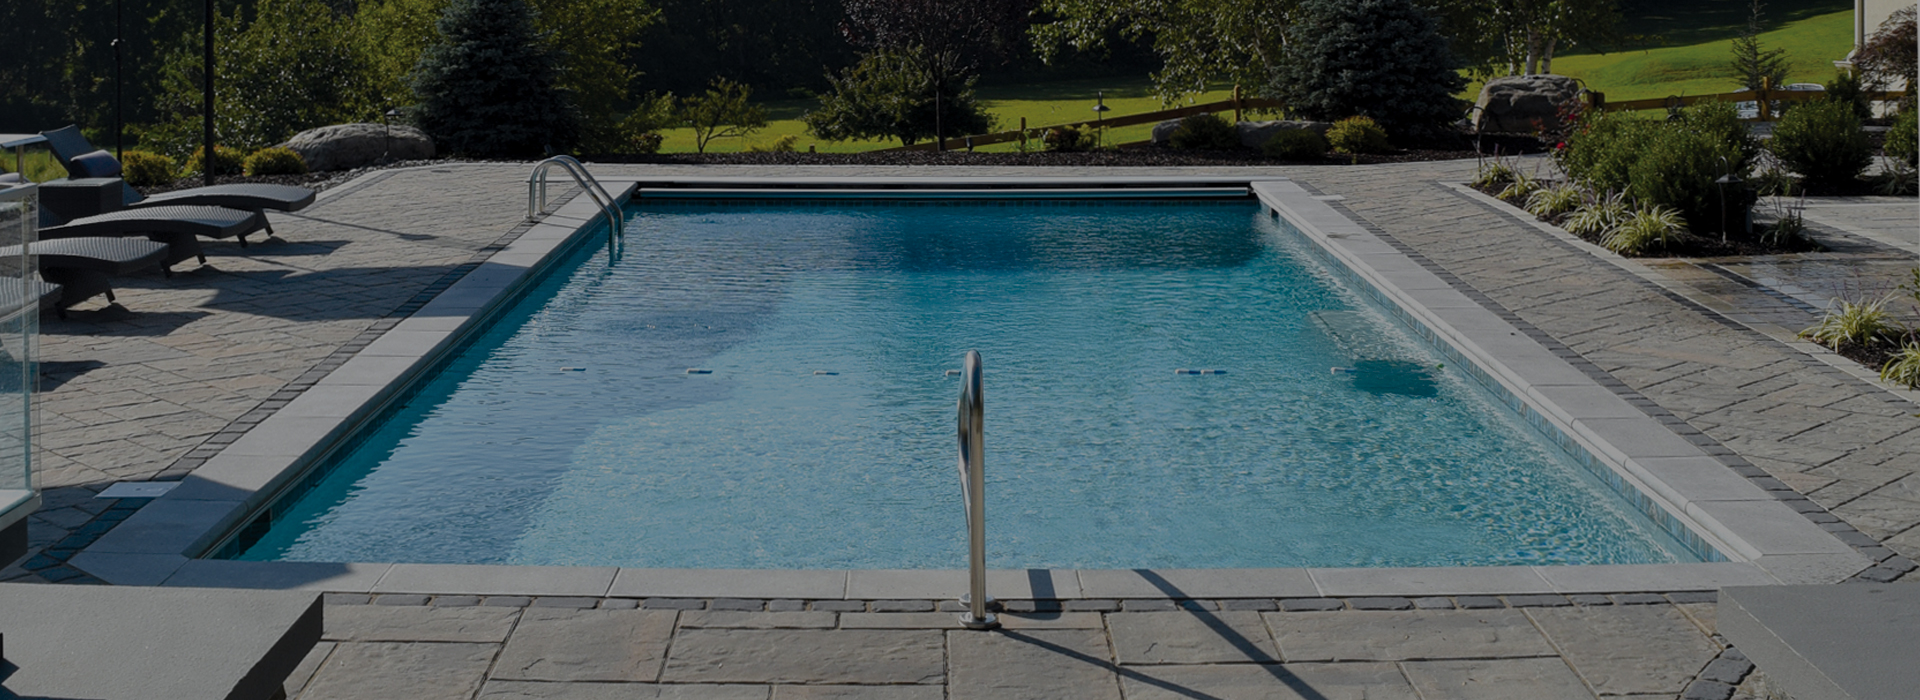 inground swimming pool with paver patio